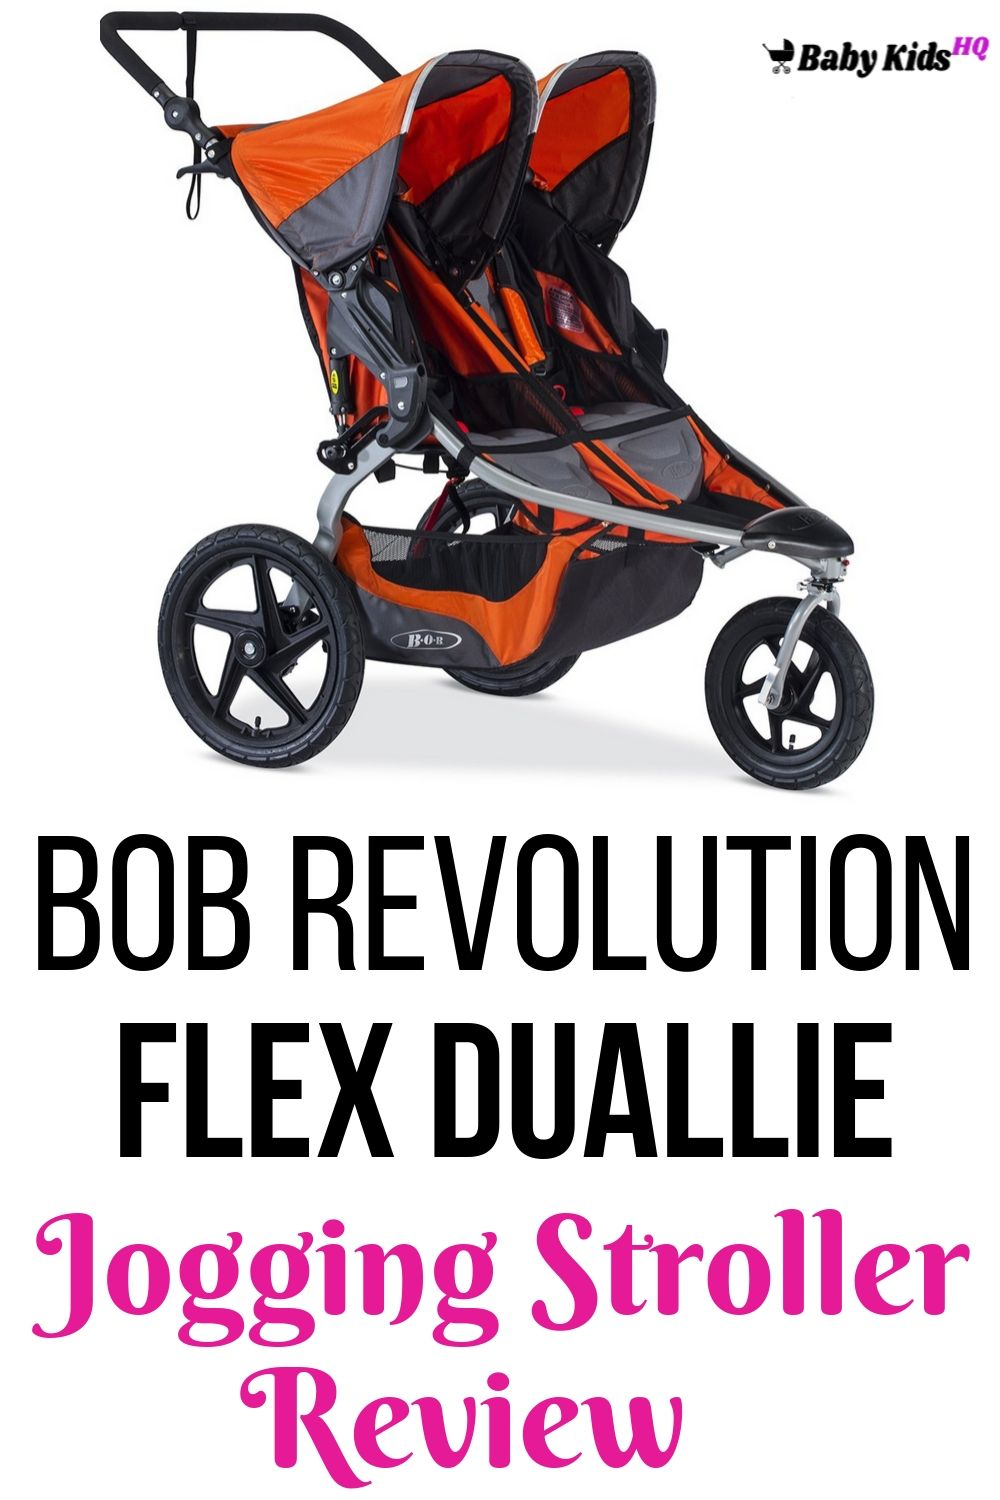 All-in-all, the BOB Revolution SE Duallie Stroller remains one of the best double jogging strollers on the current market, and also our absolute favorite.